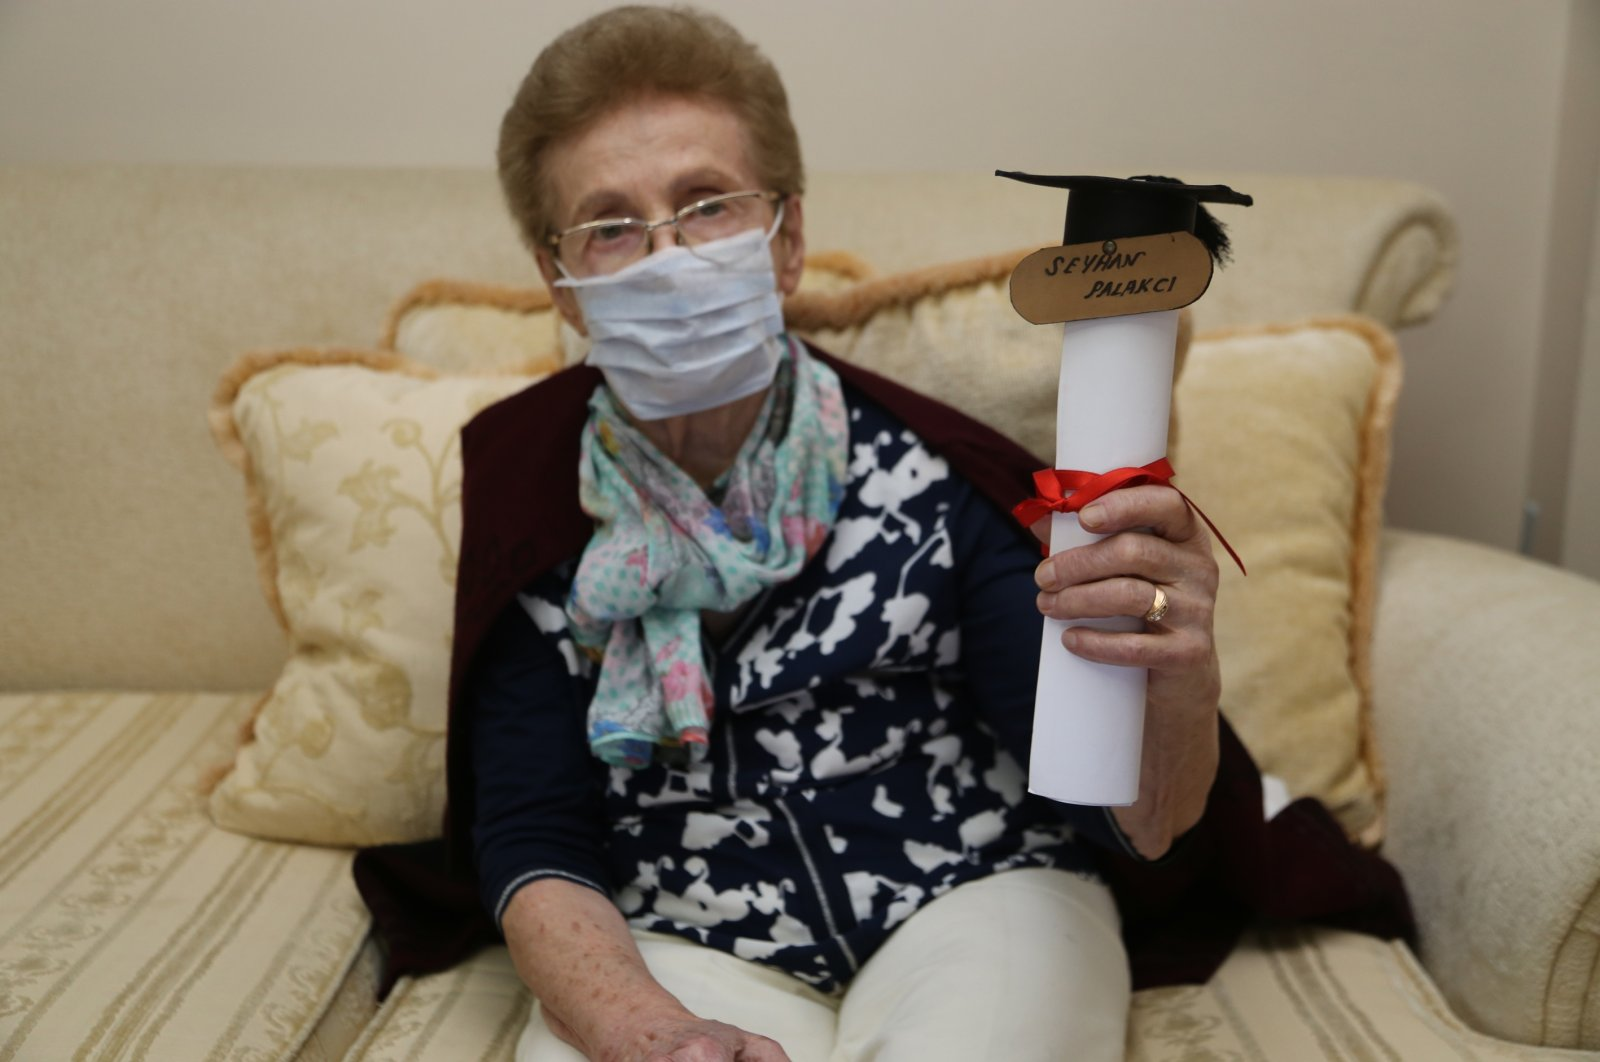 Seyhan Palakcı shows her diploma at her home, in Ordu, northern Turkey, Nov. 20, 2020. (AA Photo)